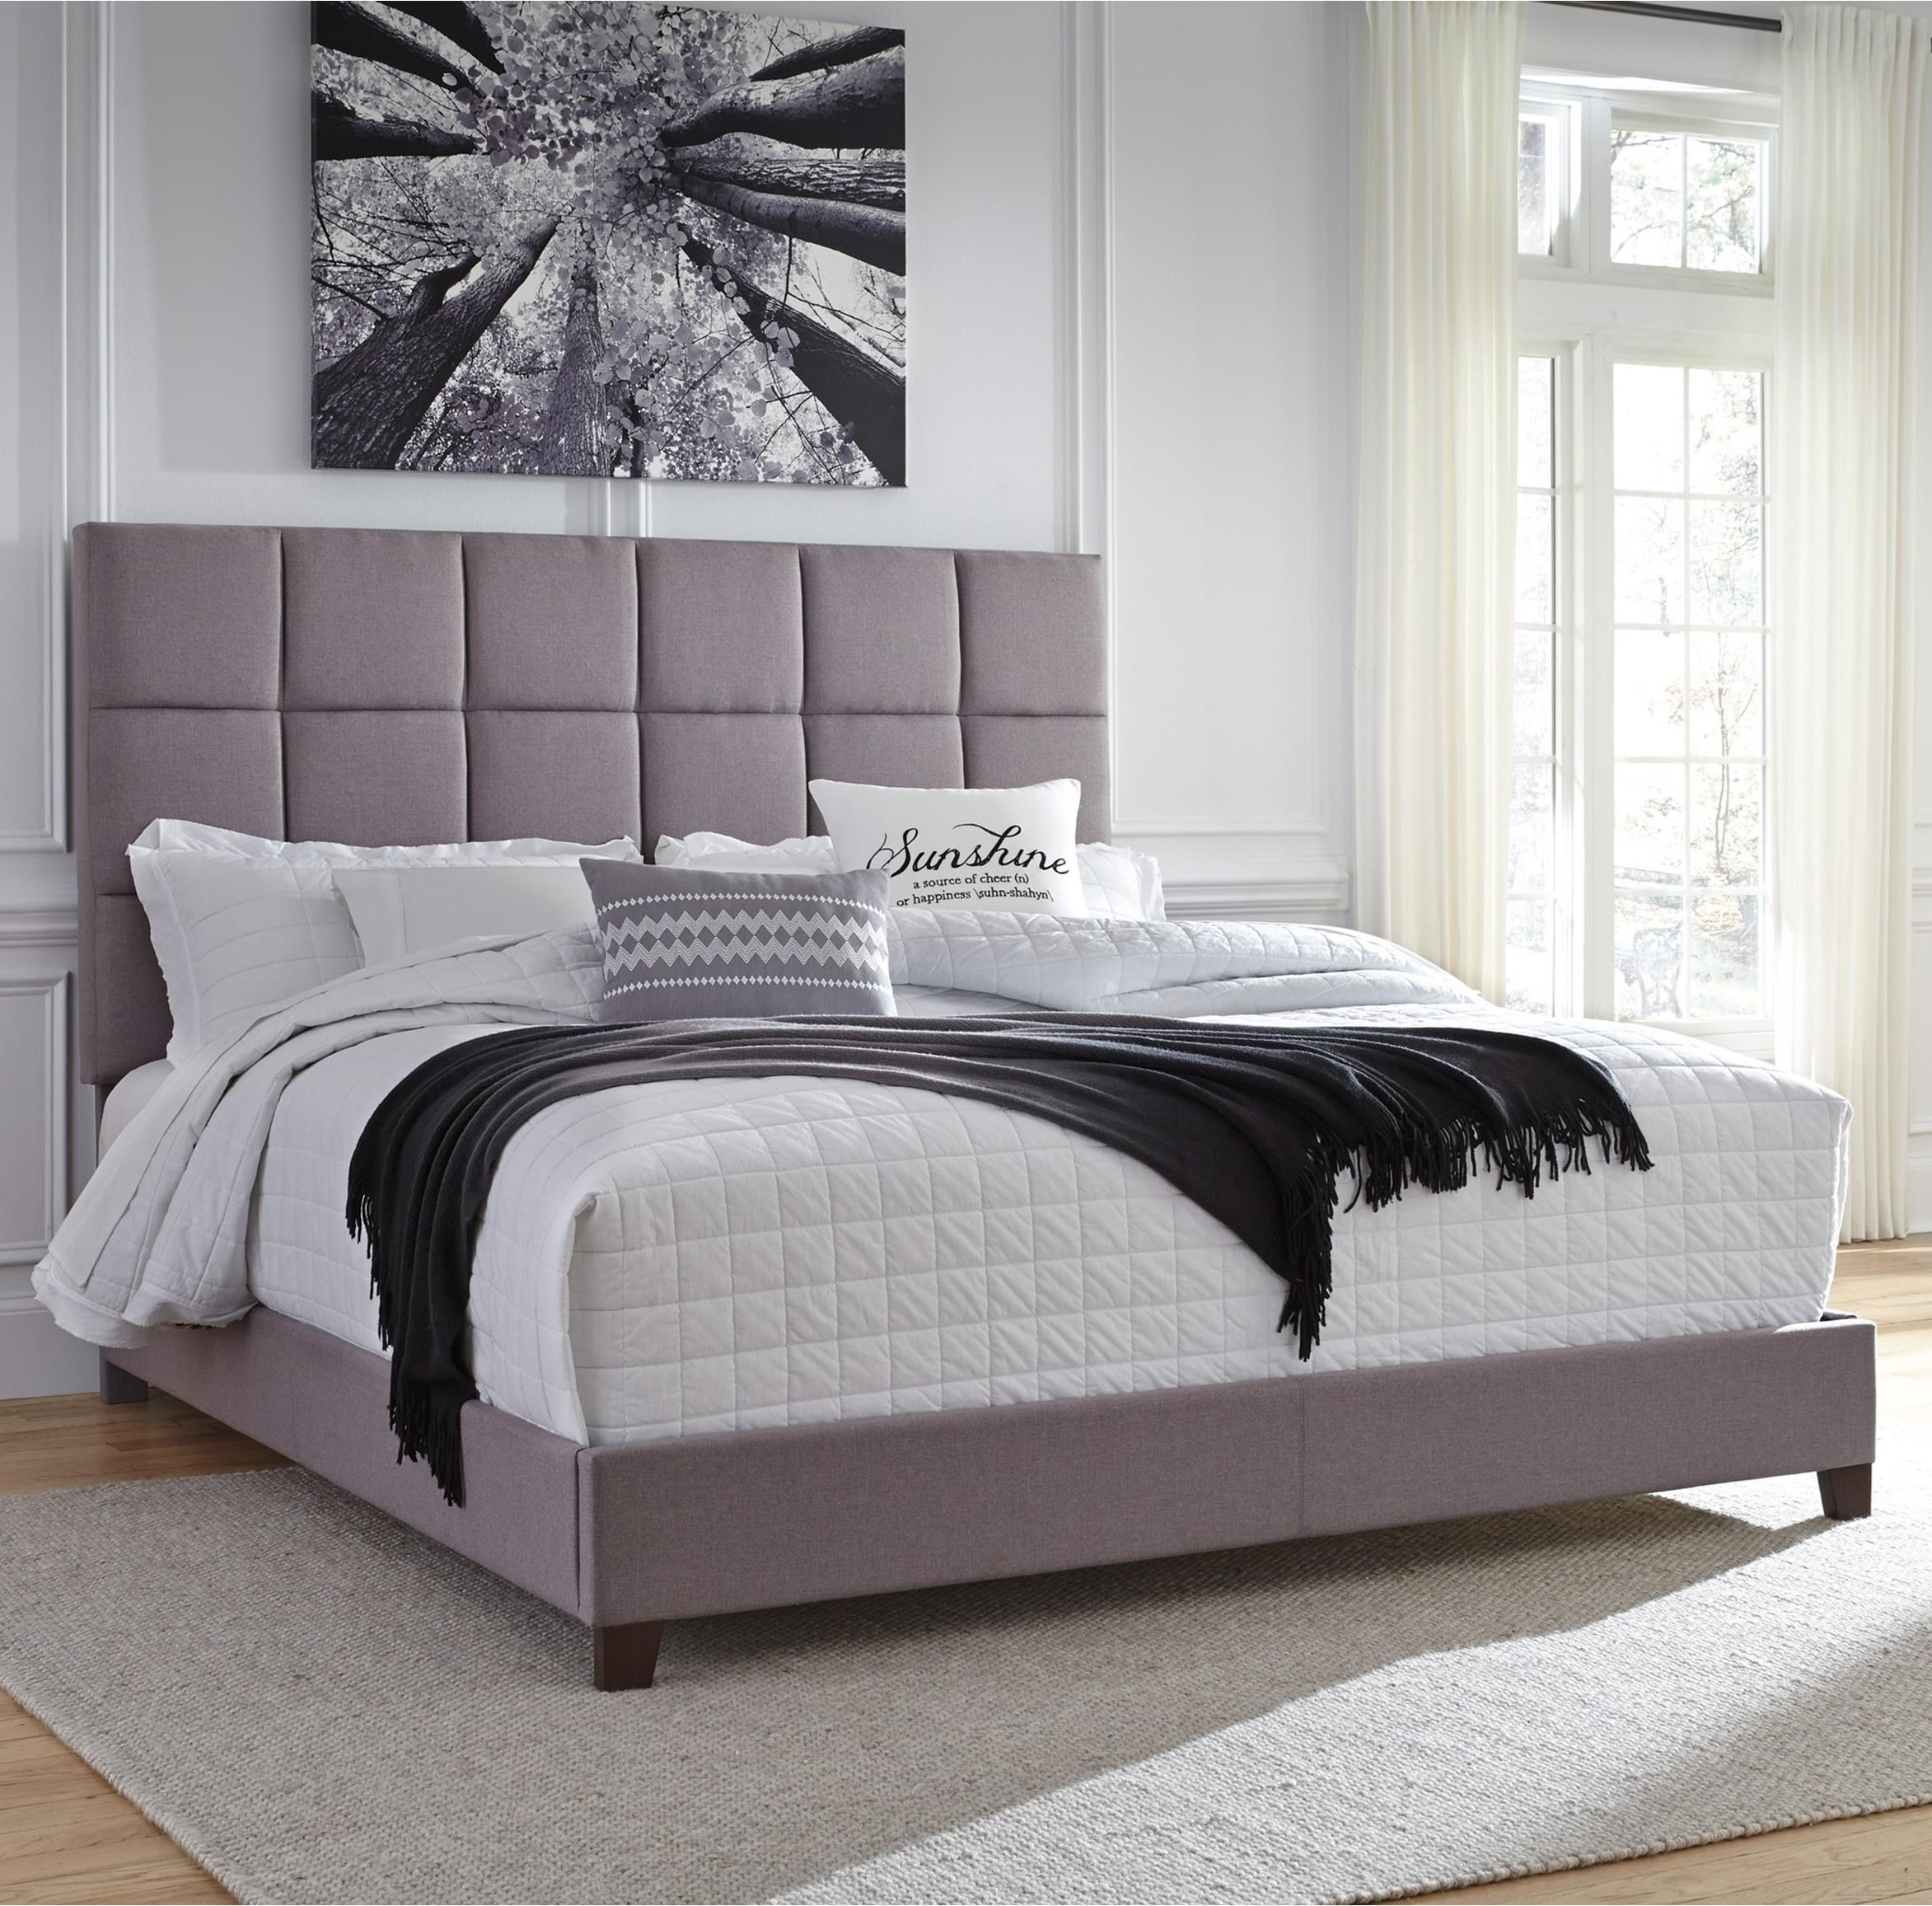 Vendor 3 Dolante B130 382 King Upholstered Bed In Gray Fabric Becker Furniture Upholstered Beds